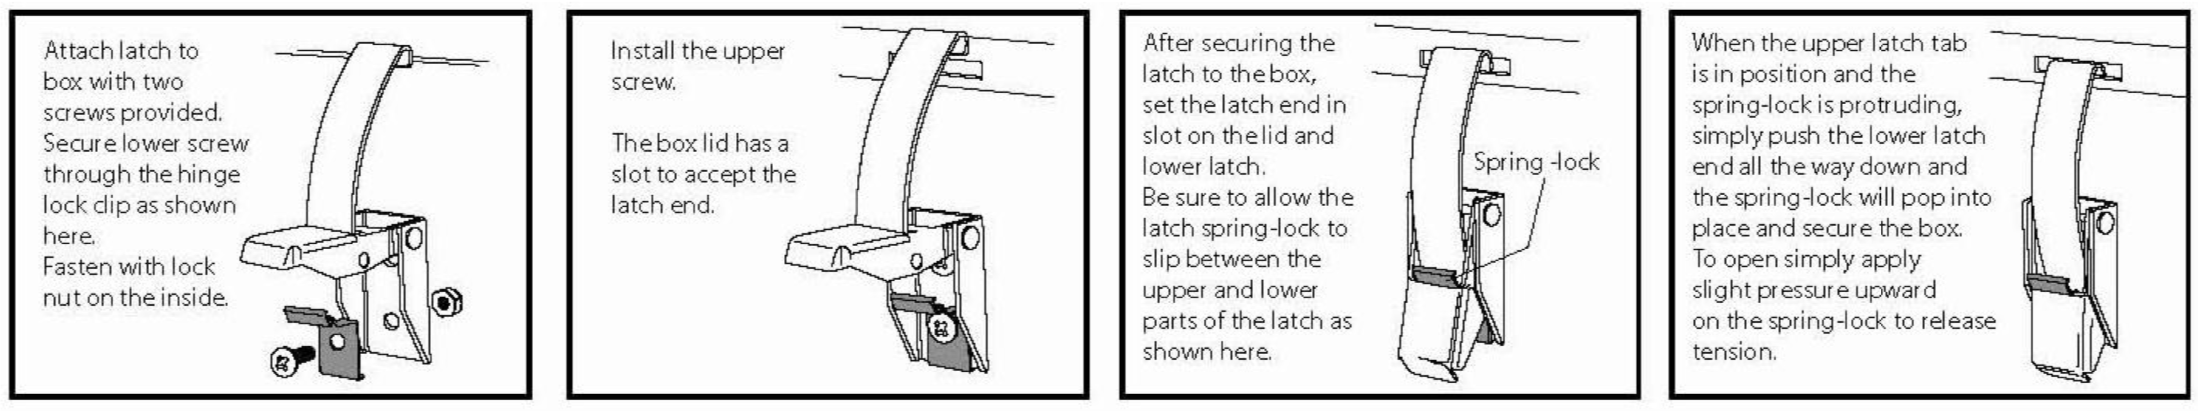 Attach latch to the box with two screws provided. Secure lower screw through the hinge lock clip as shown. Fasten with lock nut on the inside. Install the upper screw. The box lid has a slot to accept the latch end. After securing the latch to the box, set the latch end in slot on the lid and lower latch. Be sure to allow the latch spring-lock to slip between the upper and lower parts of the latch as shown. When the upper latch tab is in position and the spring-lock is protruding simply push the lower latch end all the way down and the spring-lock will pop into place and secure the box. To open simply apply slight pressure upward on the spring-lock to release tension.